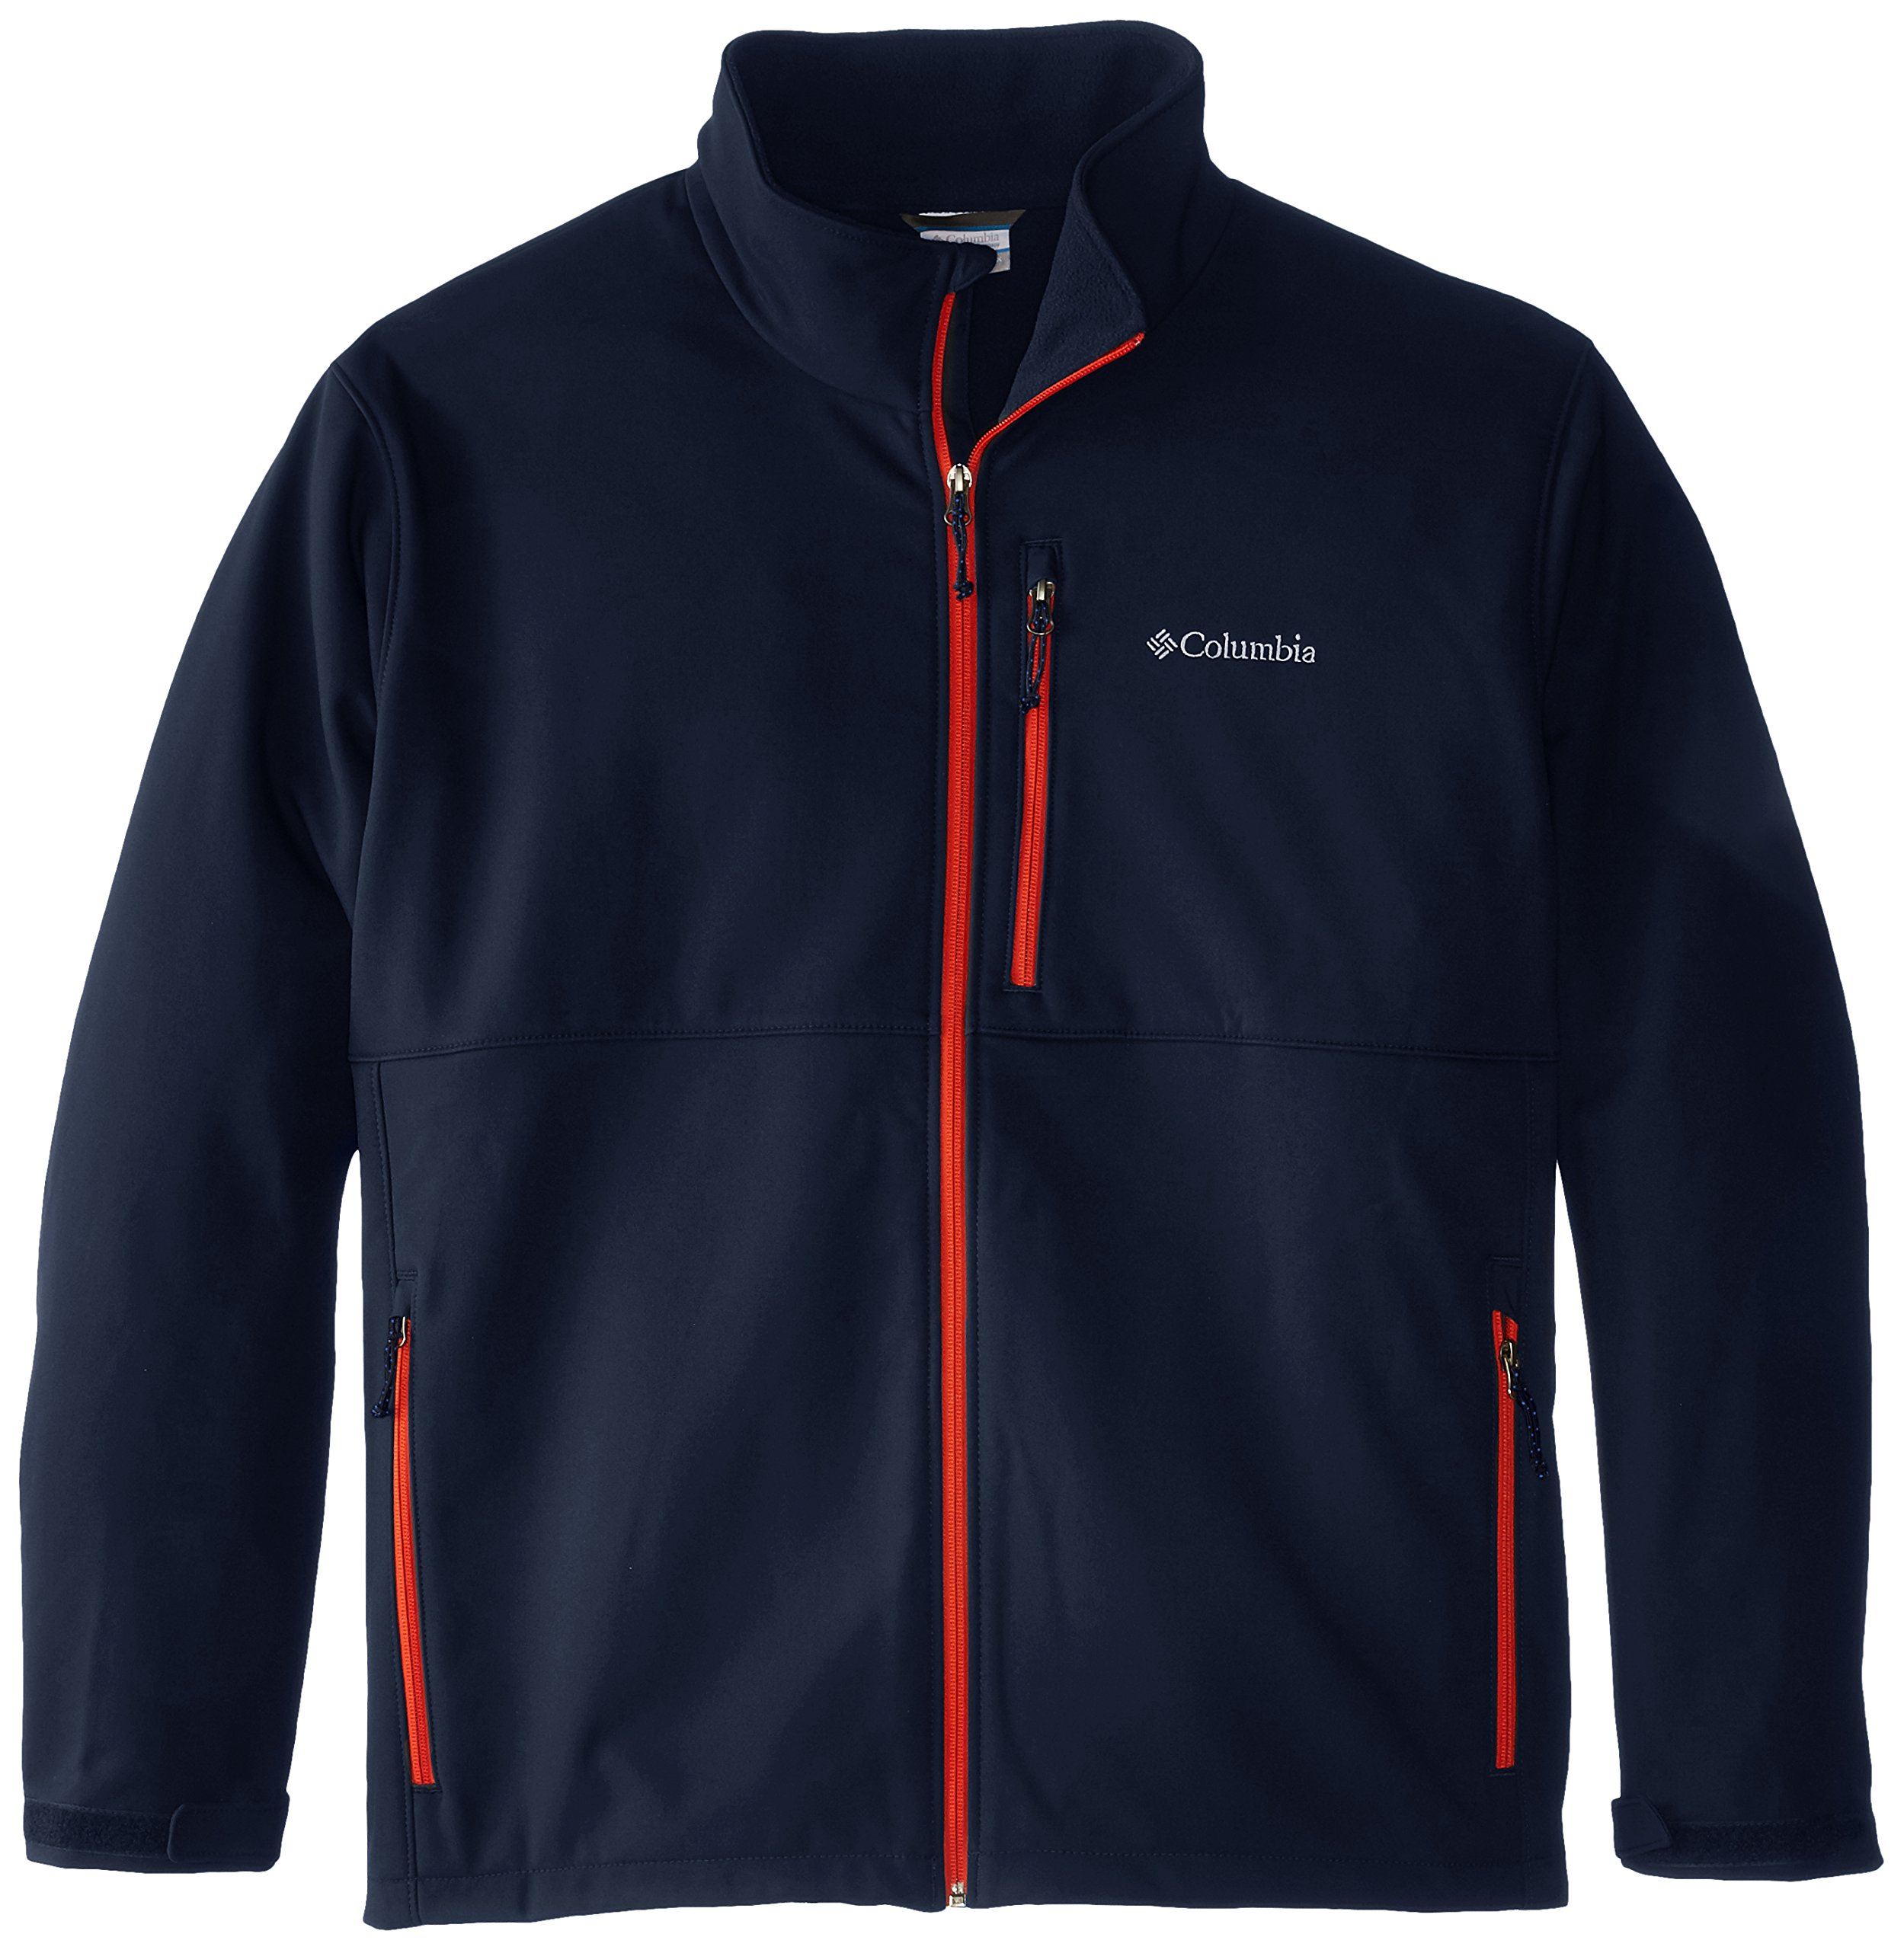 Columbia Men's Ascender Big and Tall Softshell Jacket, Collegiate Navy/Mountain Red, 4X